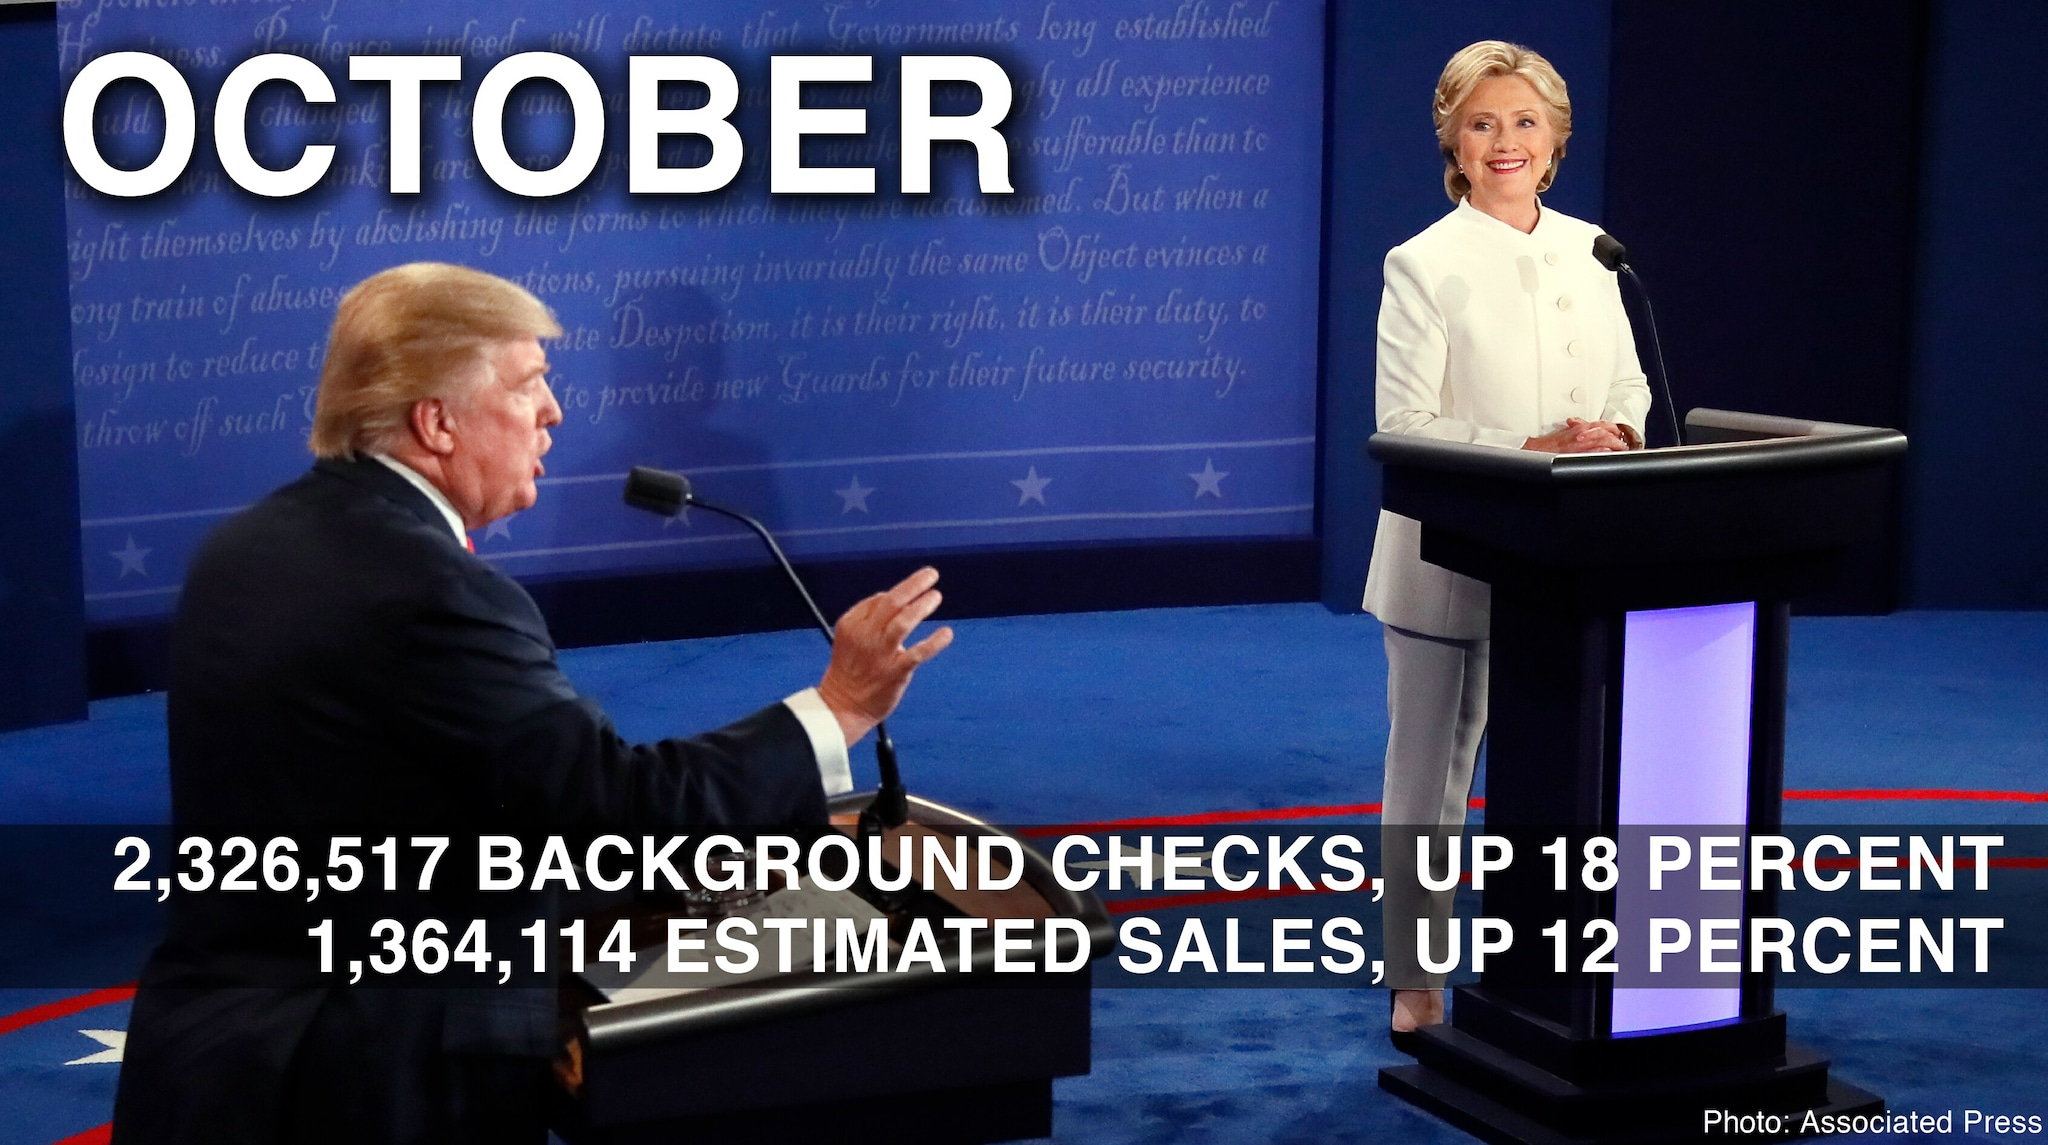 october 2016 background check stats